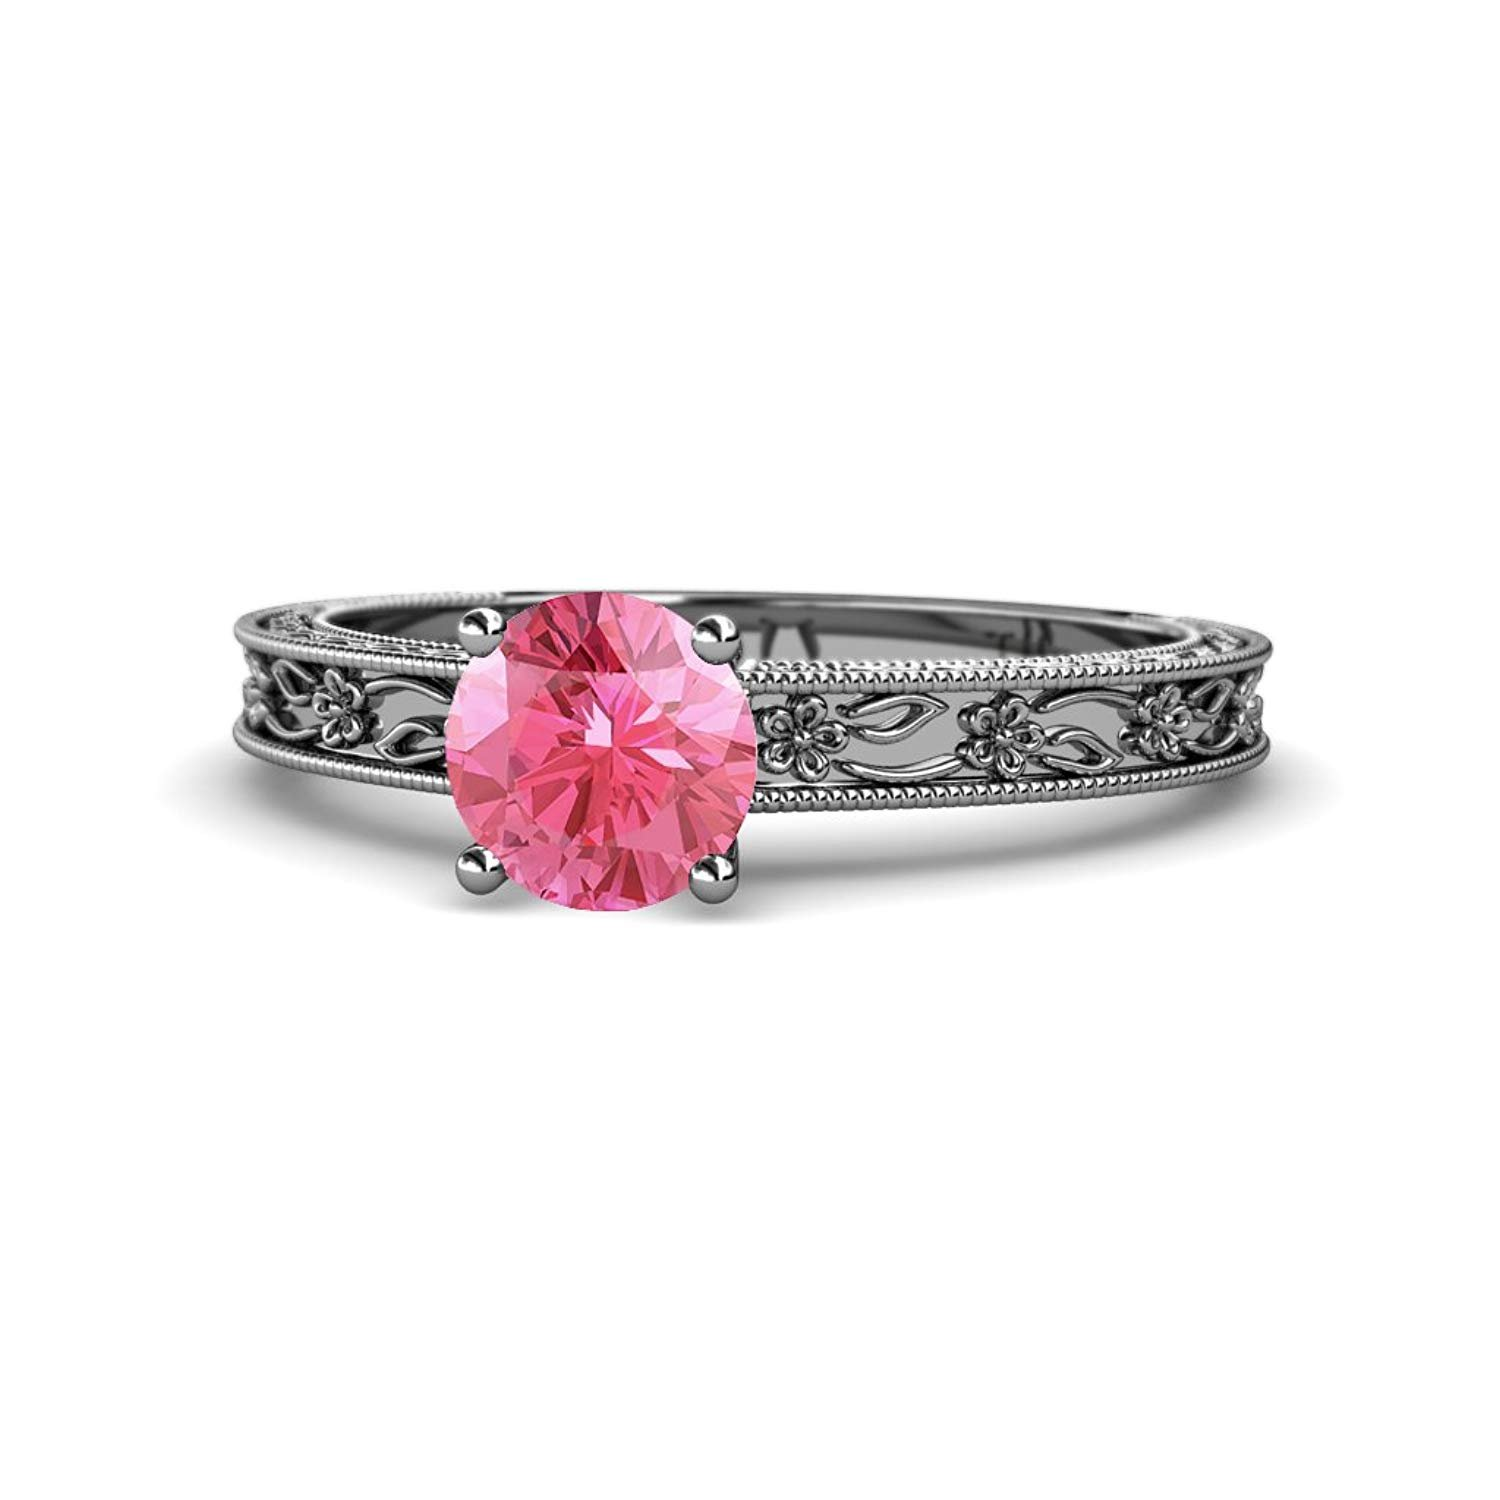 Pink Tourmaline 6.5mm Milgrain Work Floral Engraved Solitaire Engagement Ring 0.87 ct 14K White Gold.size 8.5 by TriJewels